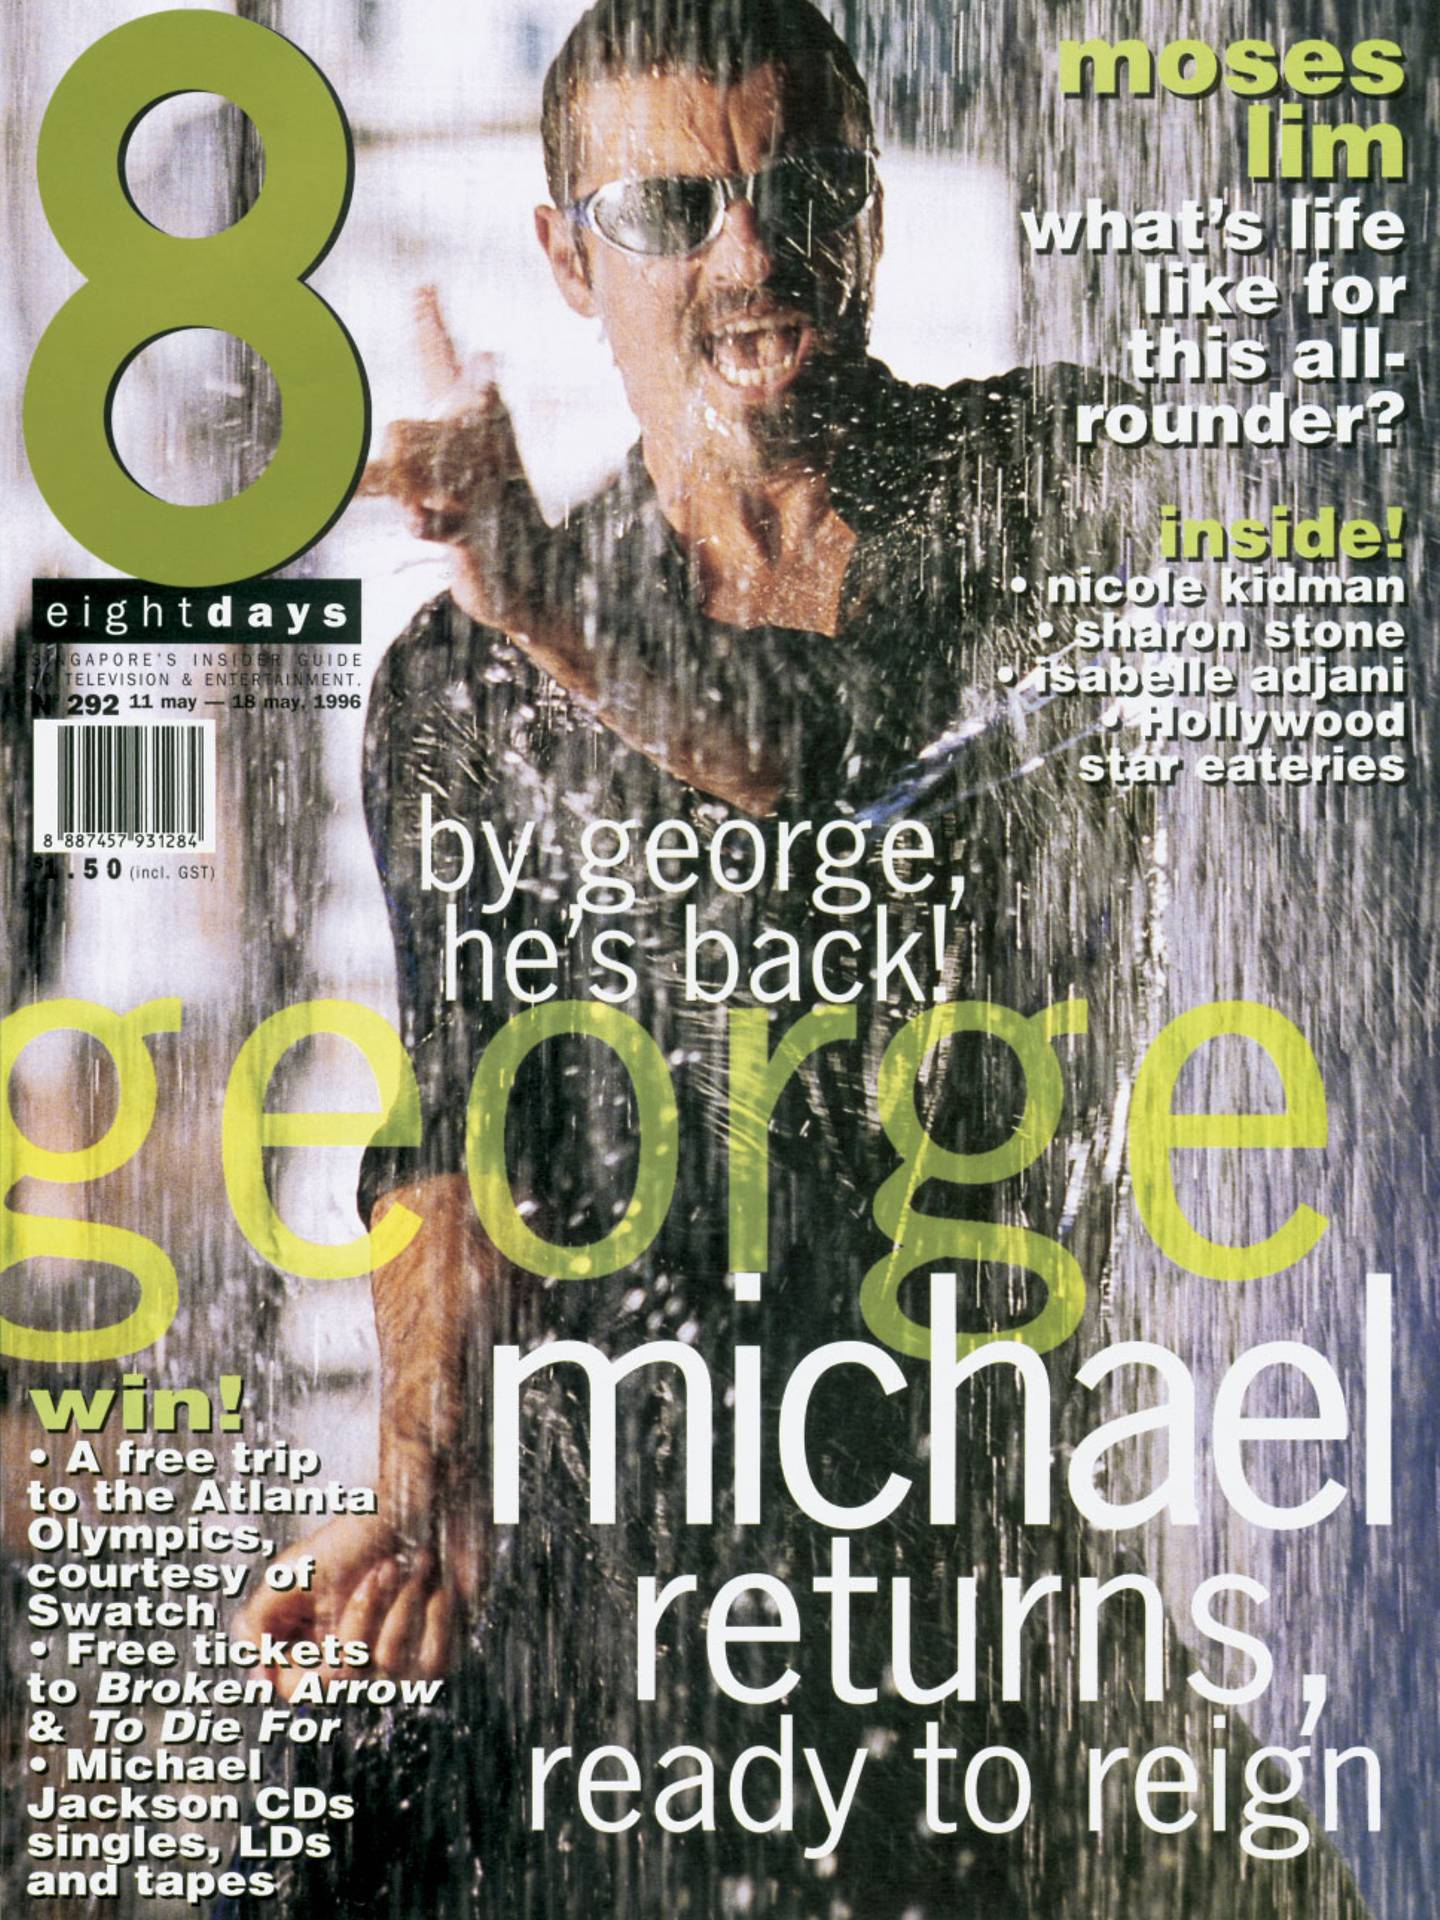 By George, He's Back (8 Days Magazine, 1996)